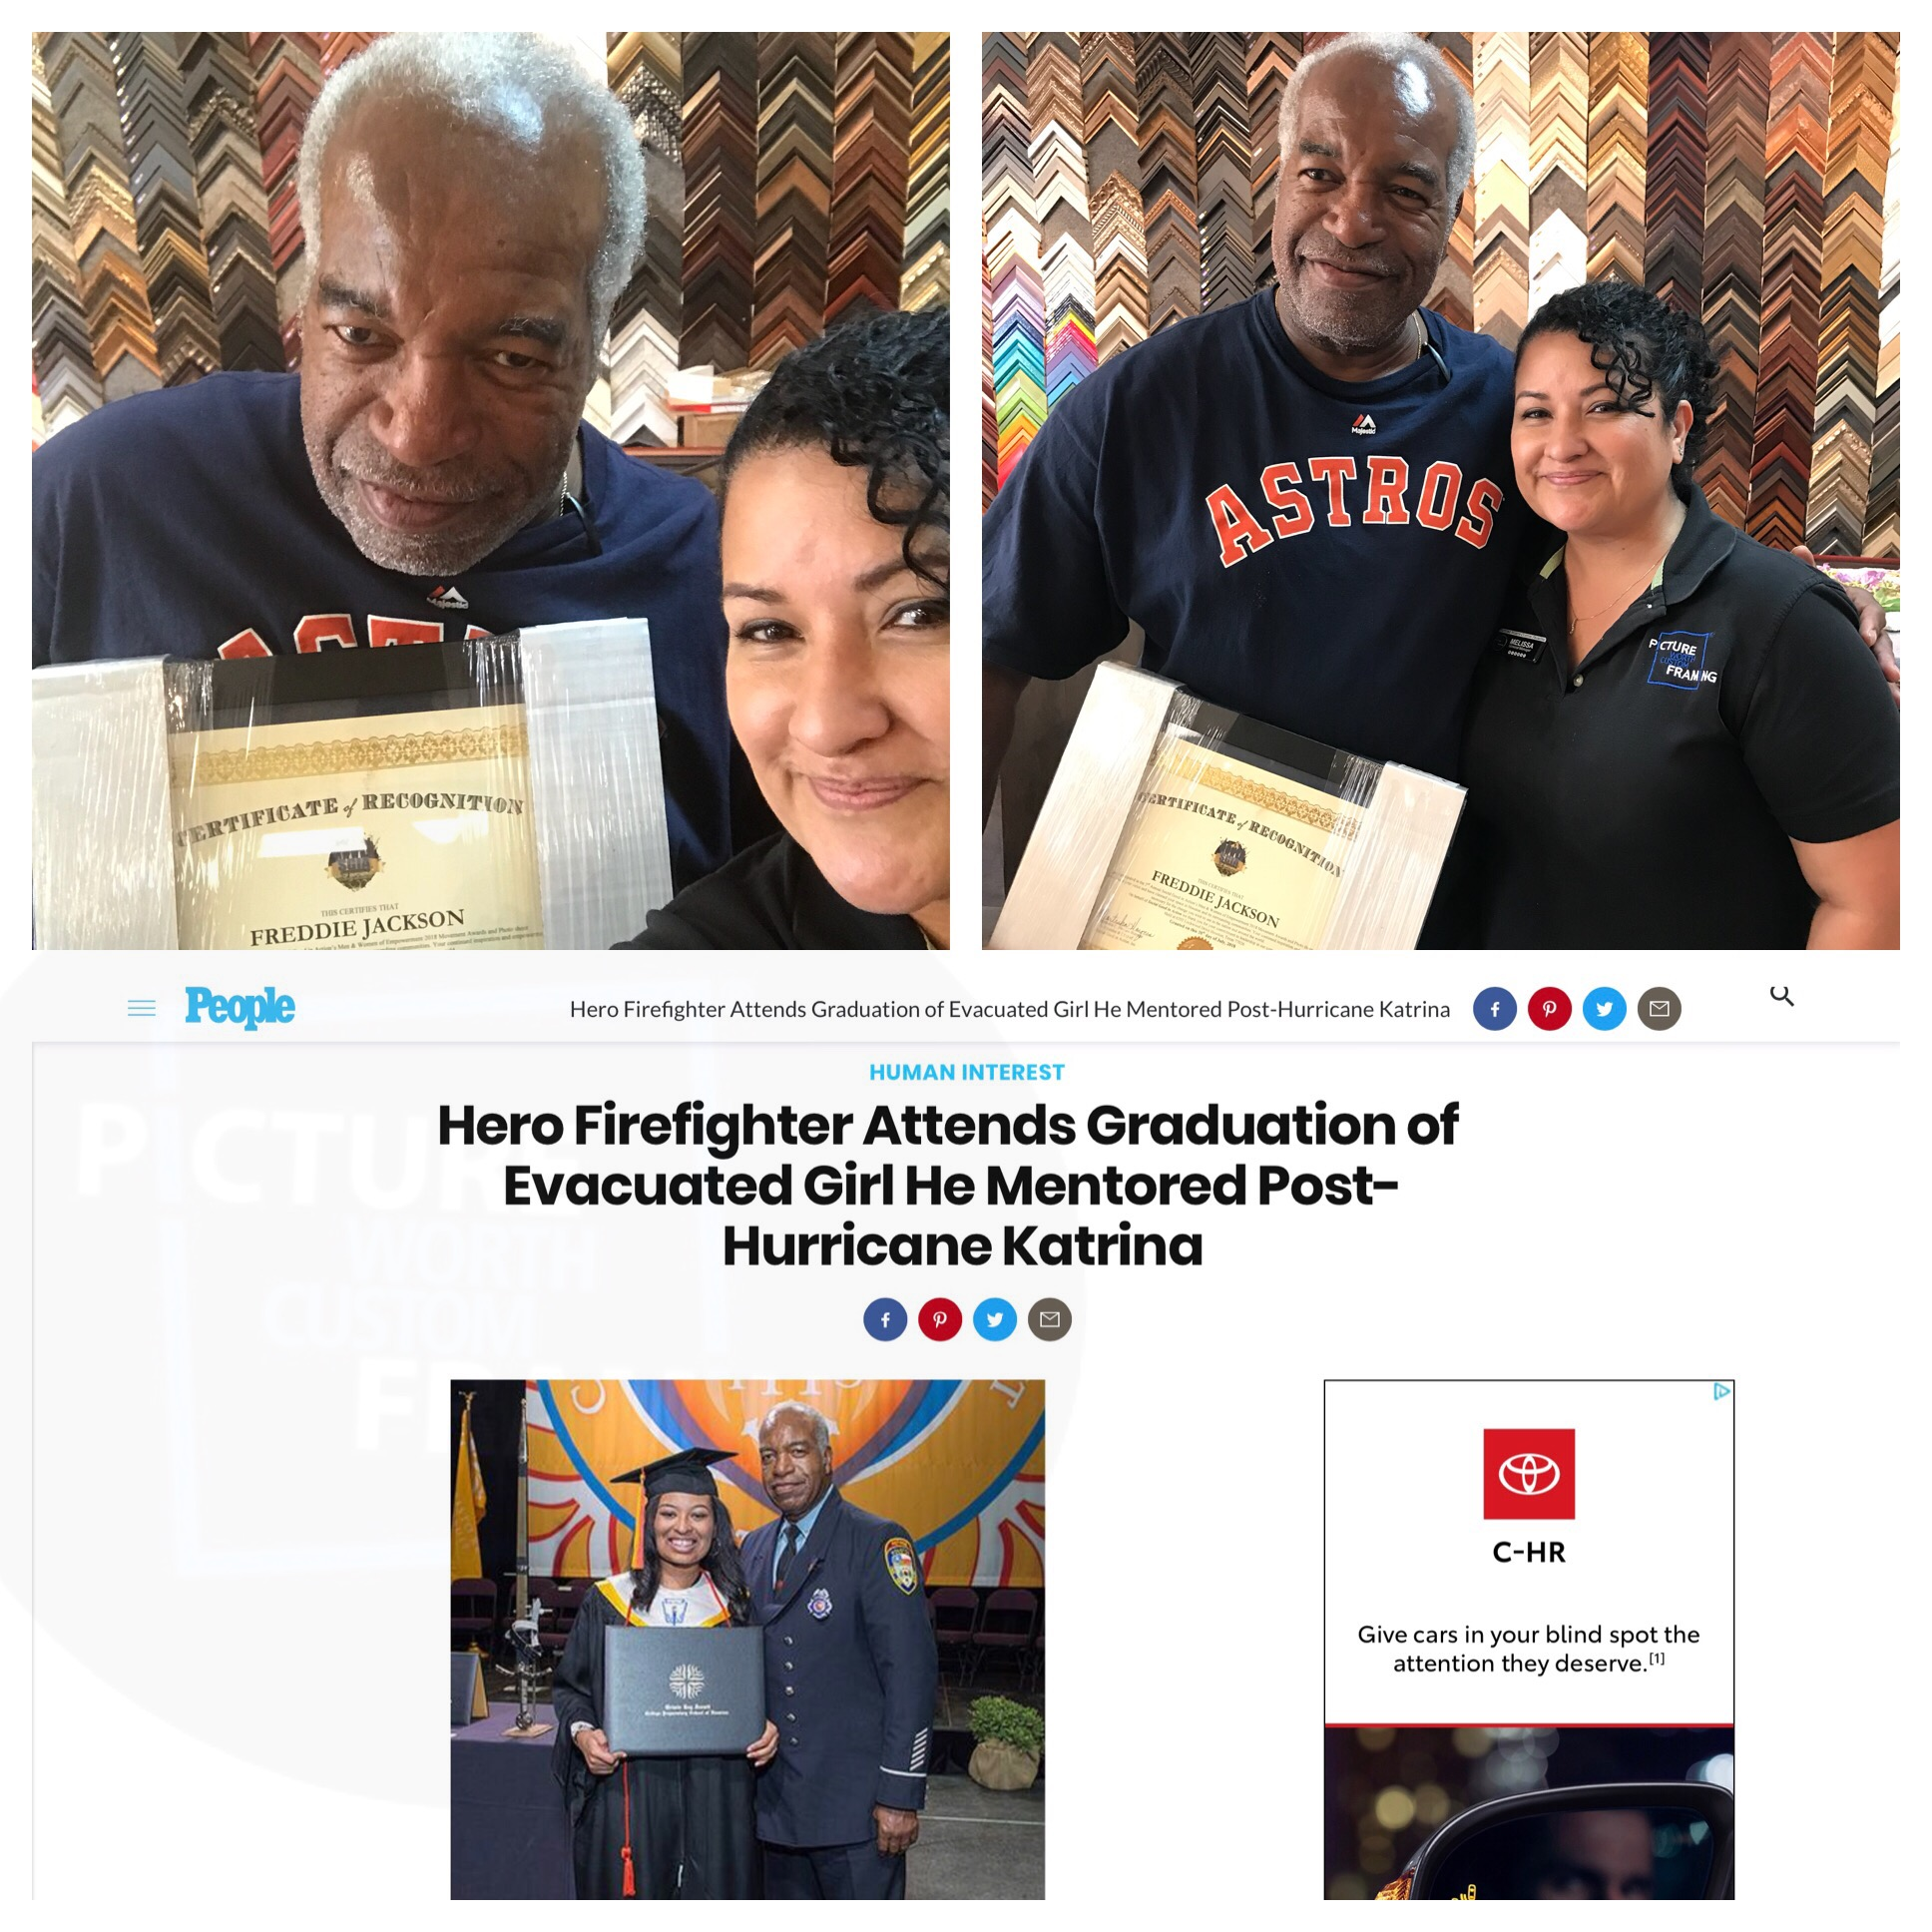 People Magazine, Freddie Jackson, Houston Firefighter, Community leader, Picture Worth Custom Framing, Recognition